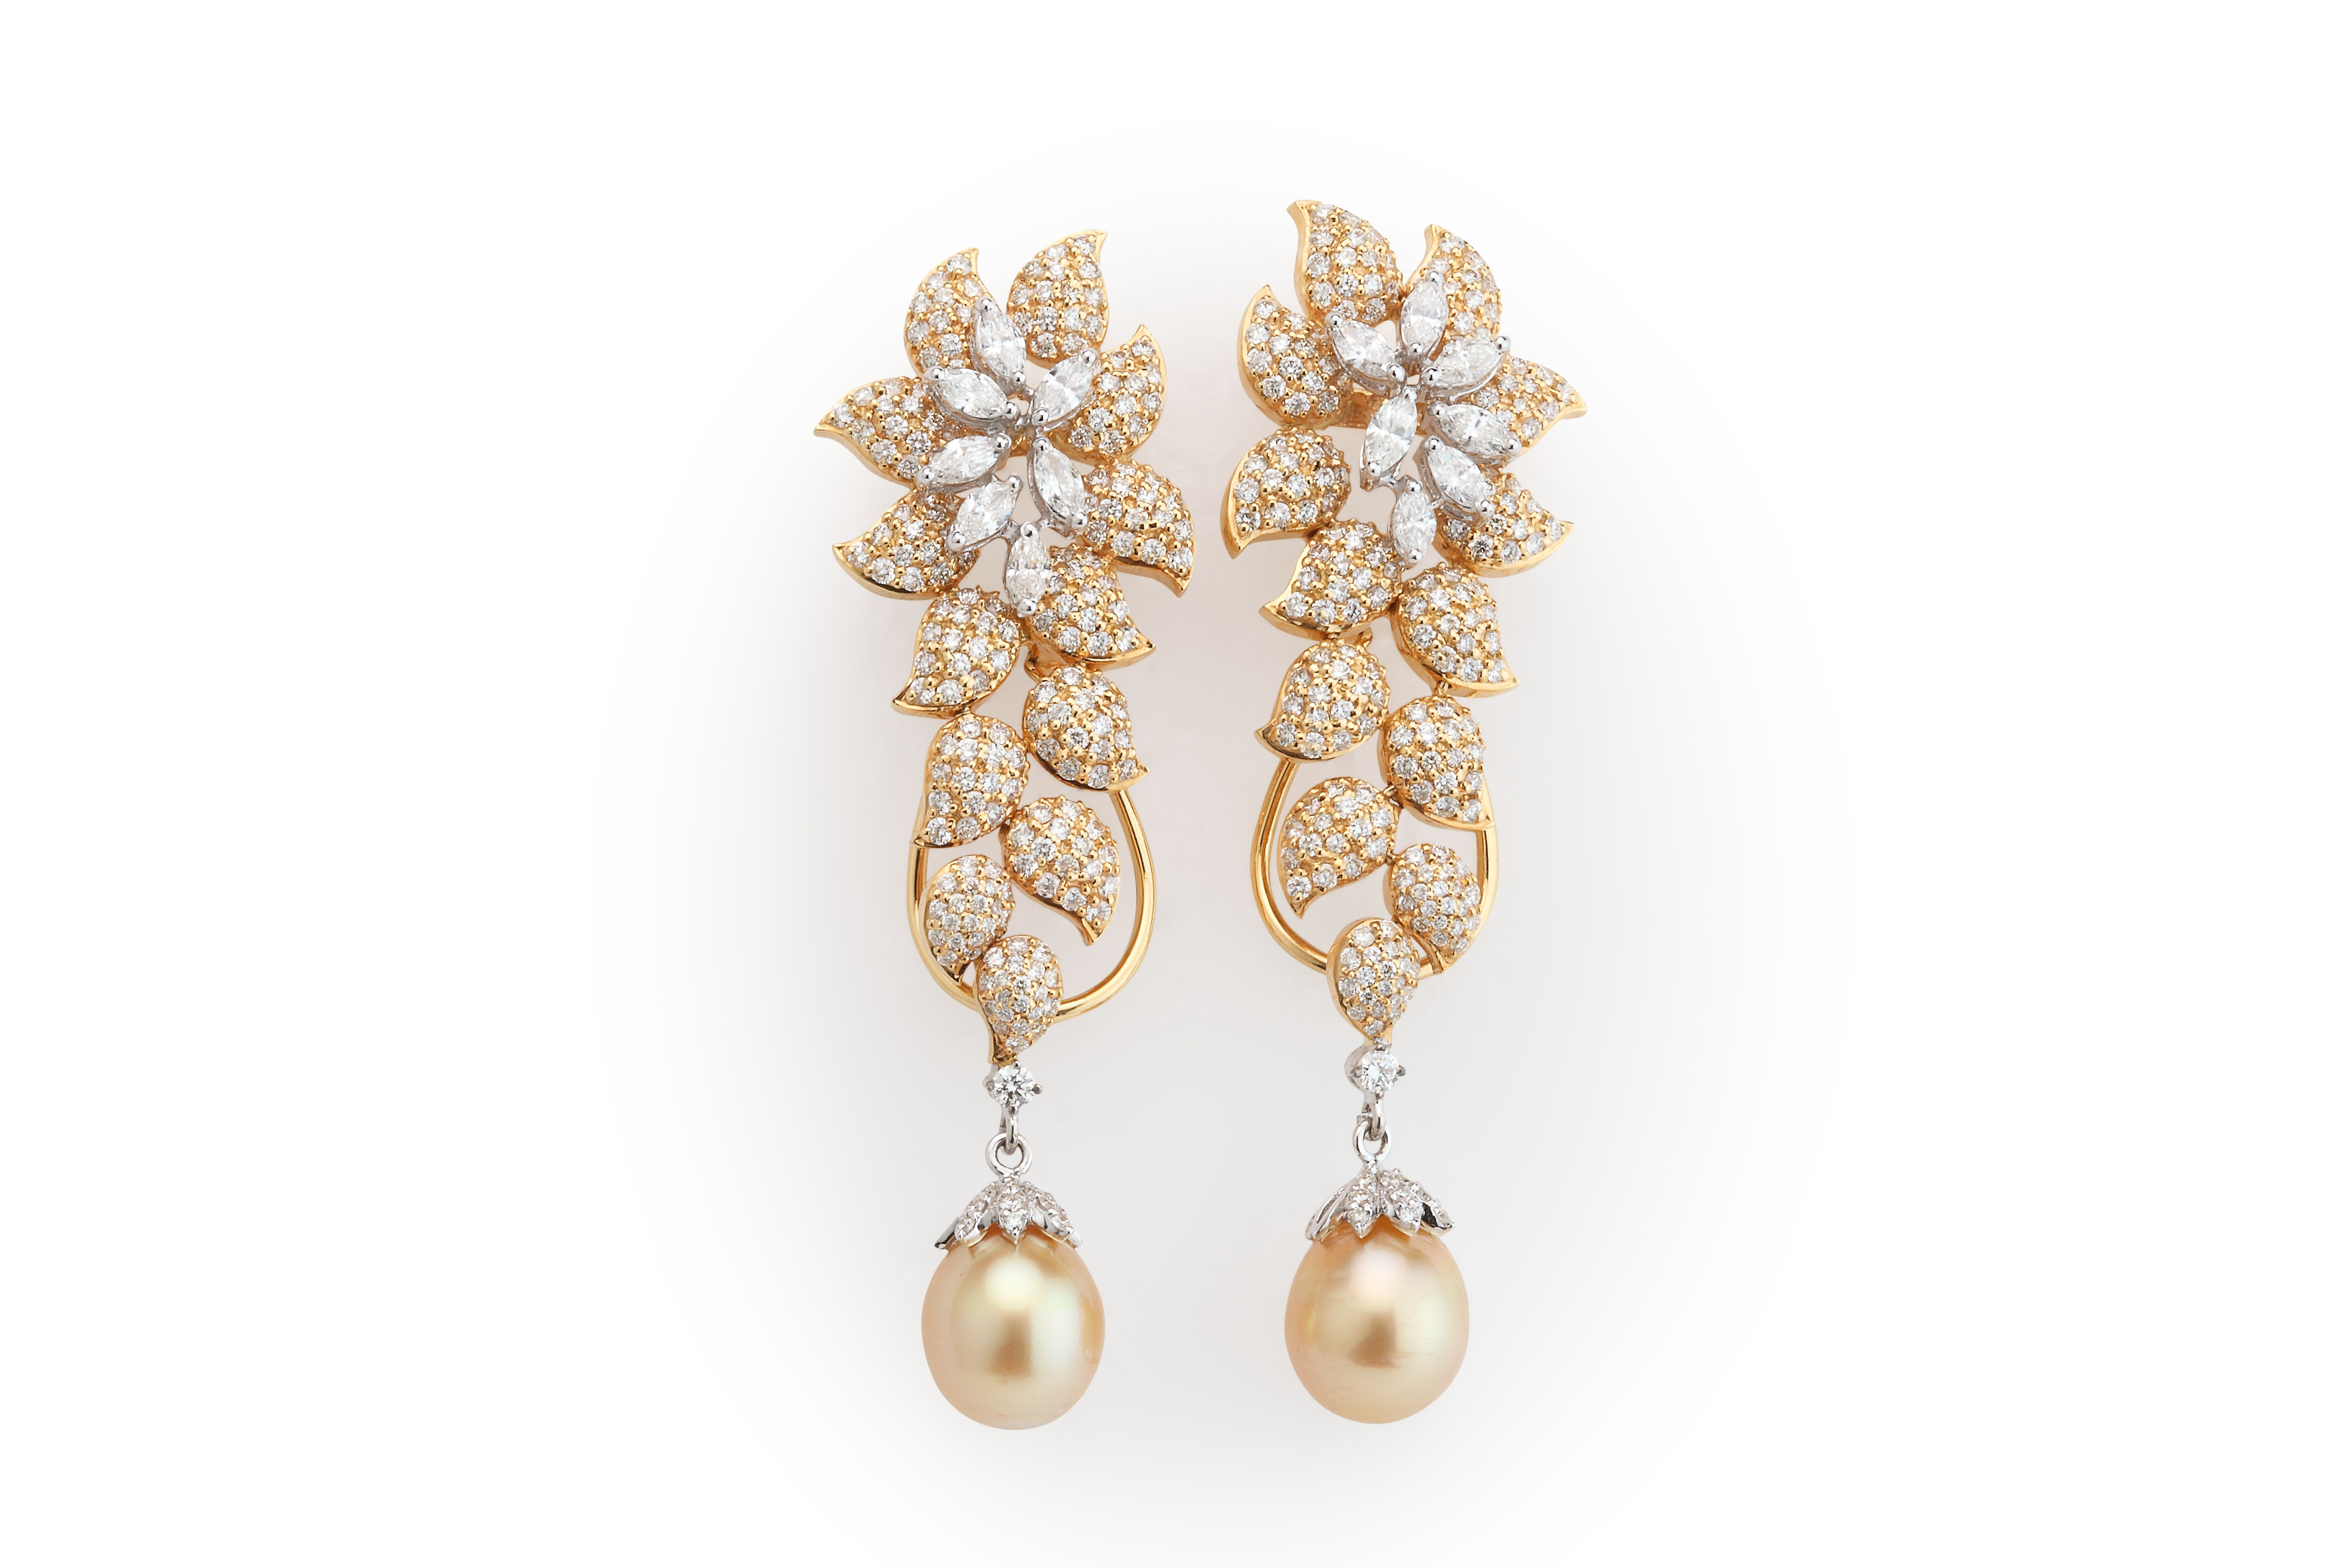 Delighted Earrings Different Styles Images - Jewelry Collection ...